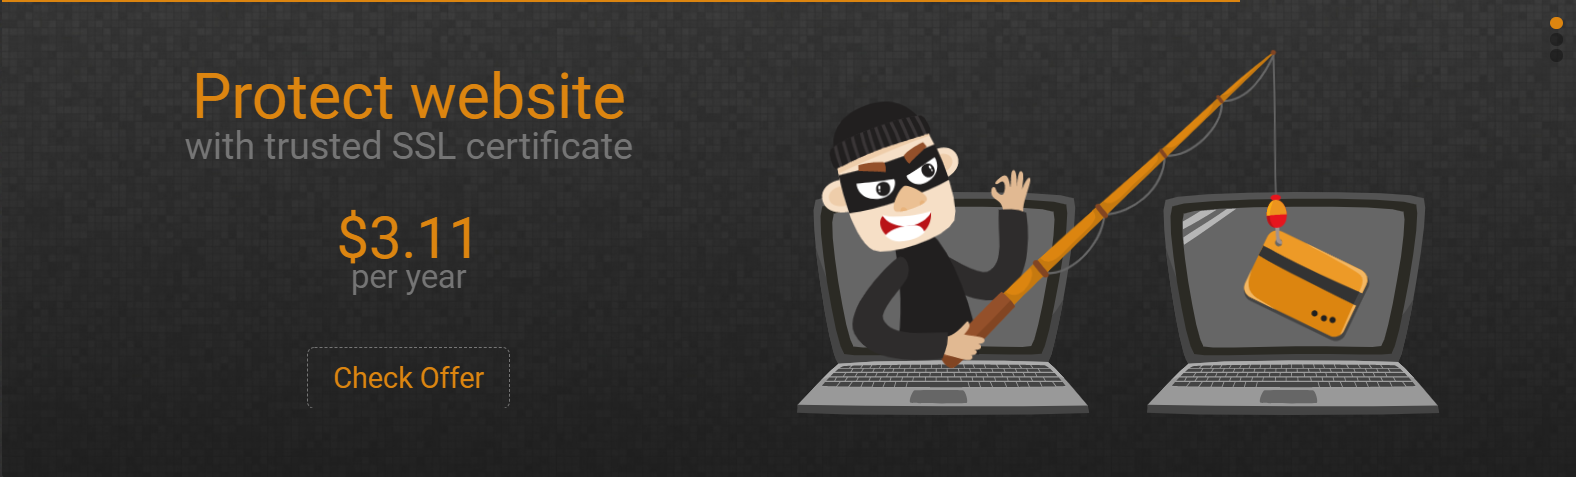 GOGETSSL Review - SSL Certificate